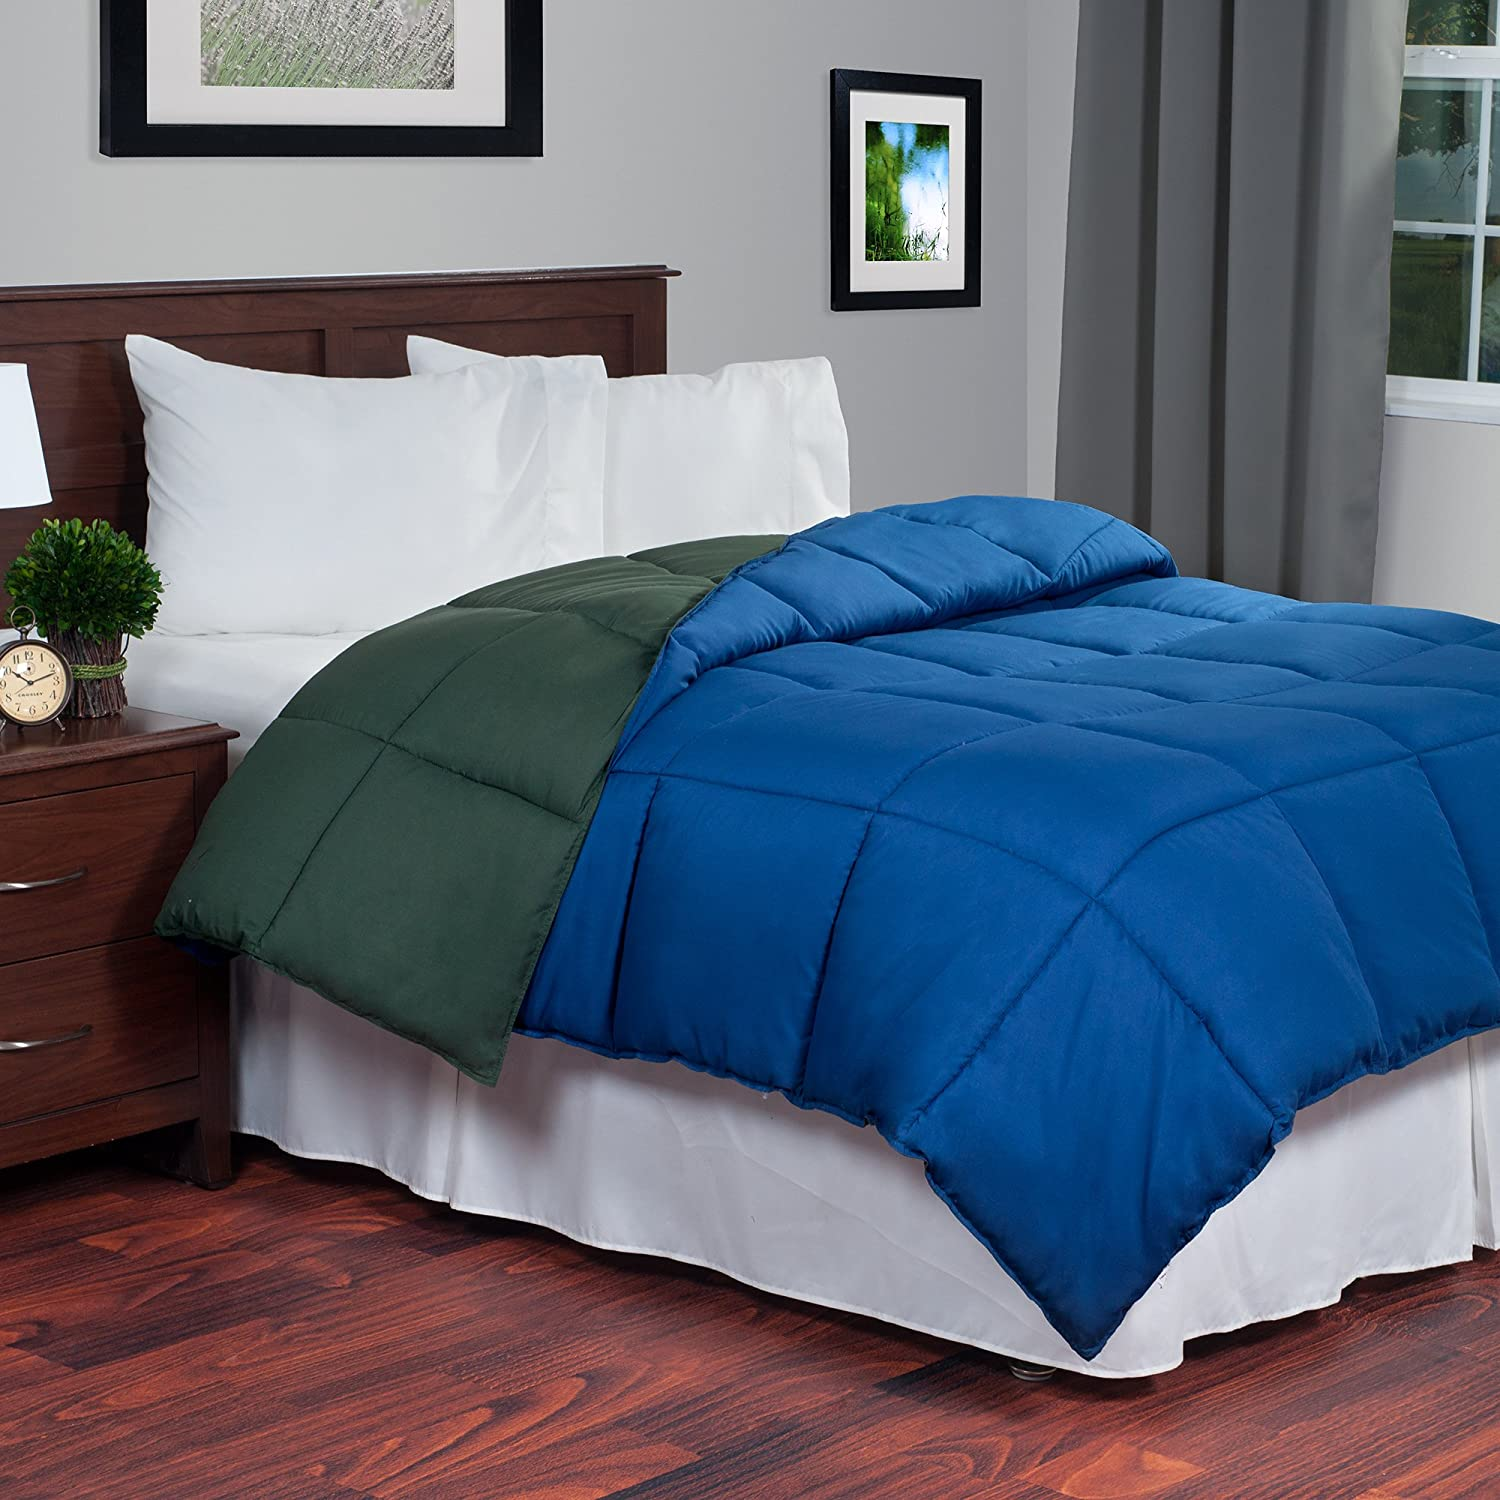 Reversible Down Alternative Comforter, King, Dark Green/Dark Blue